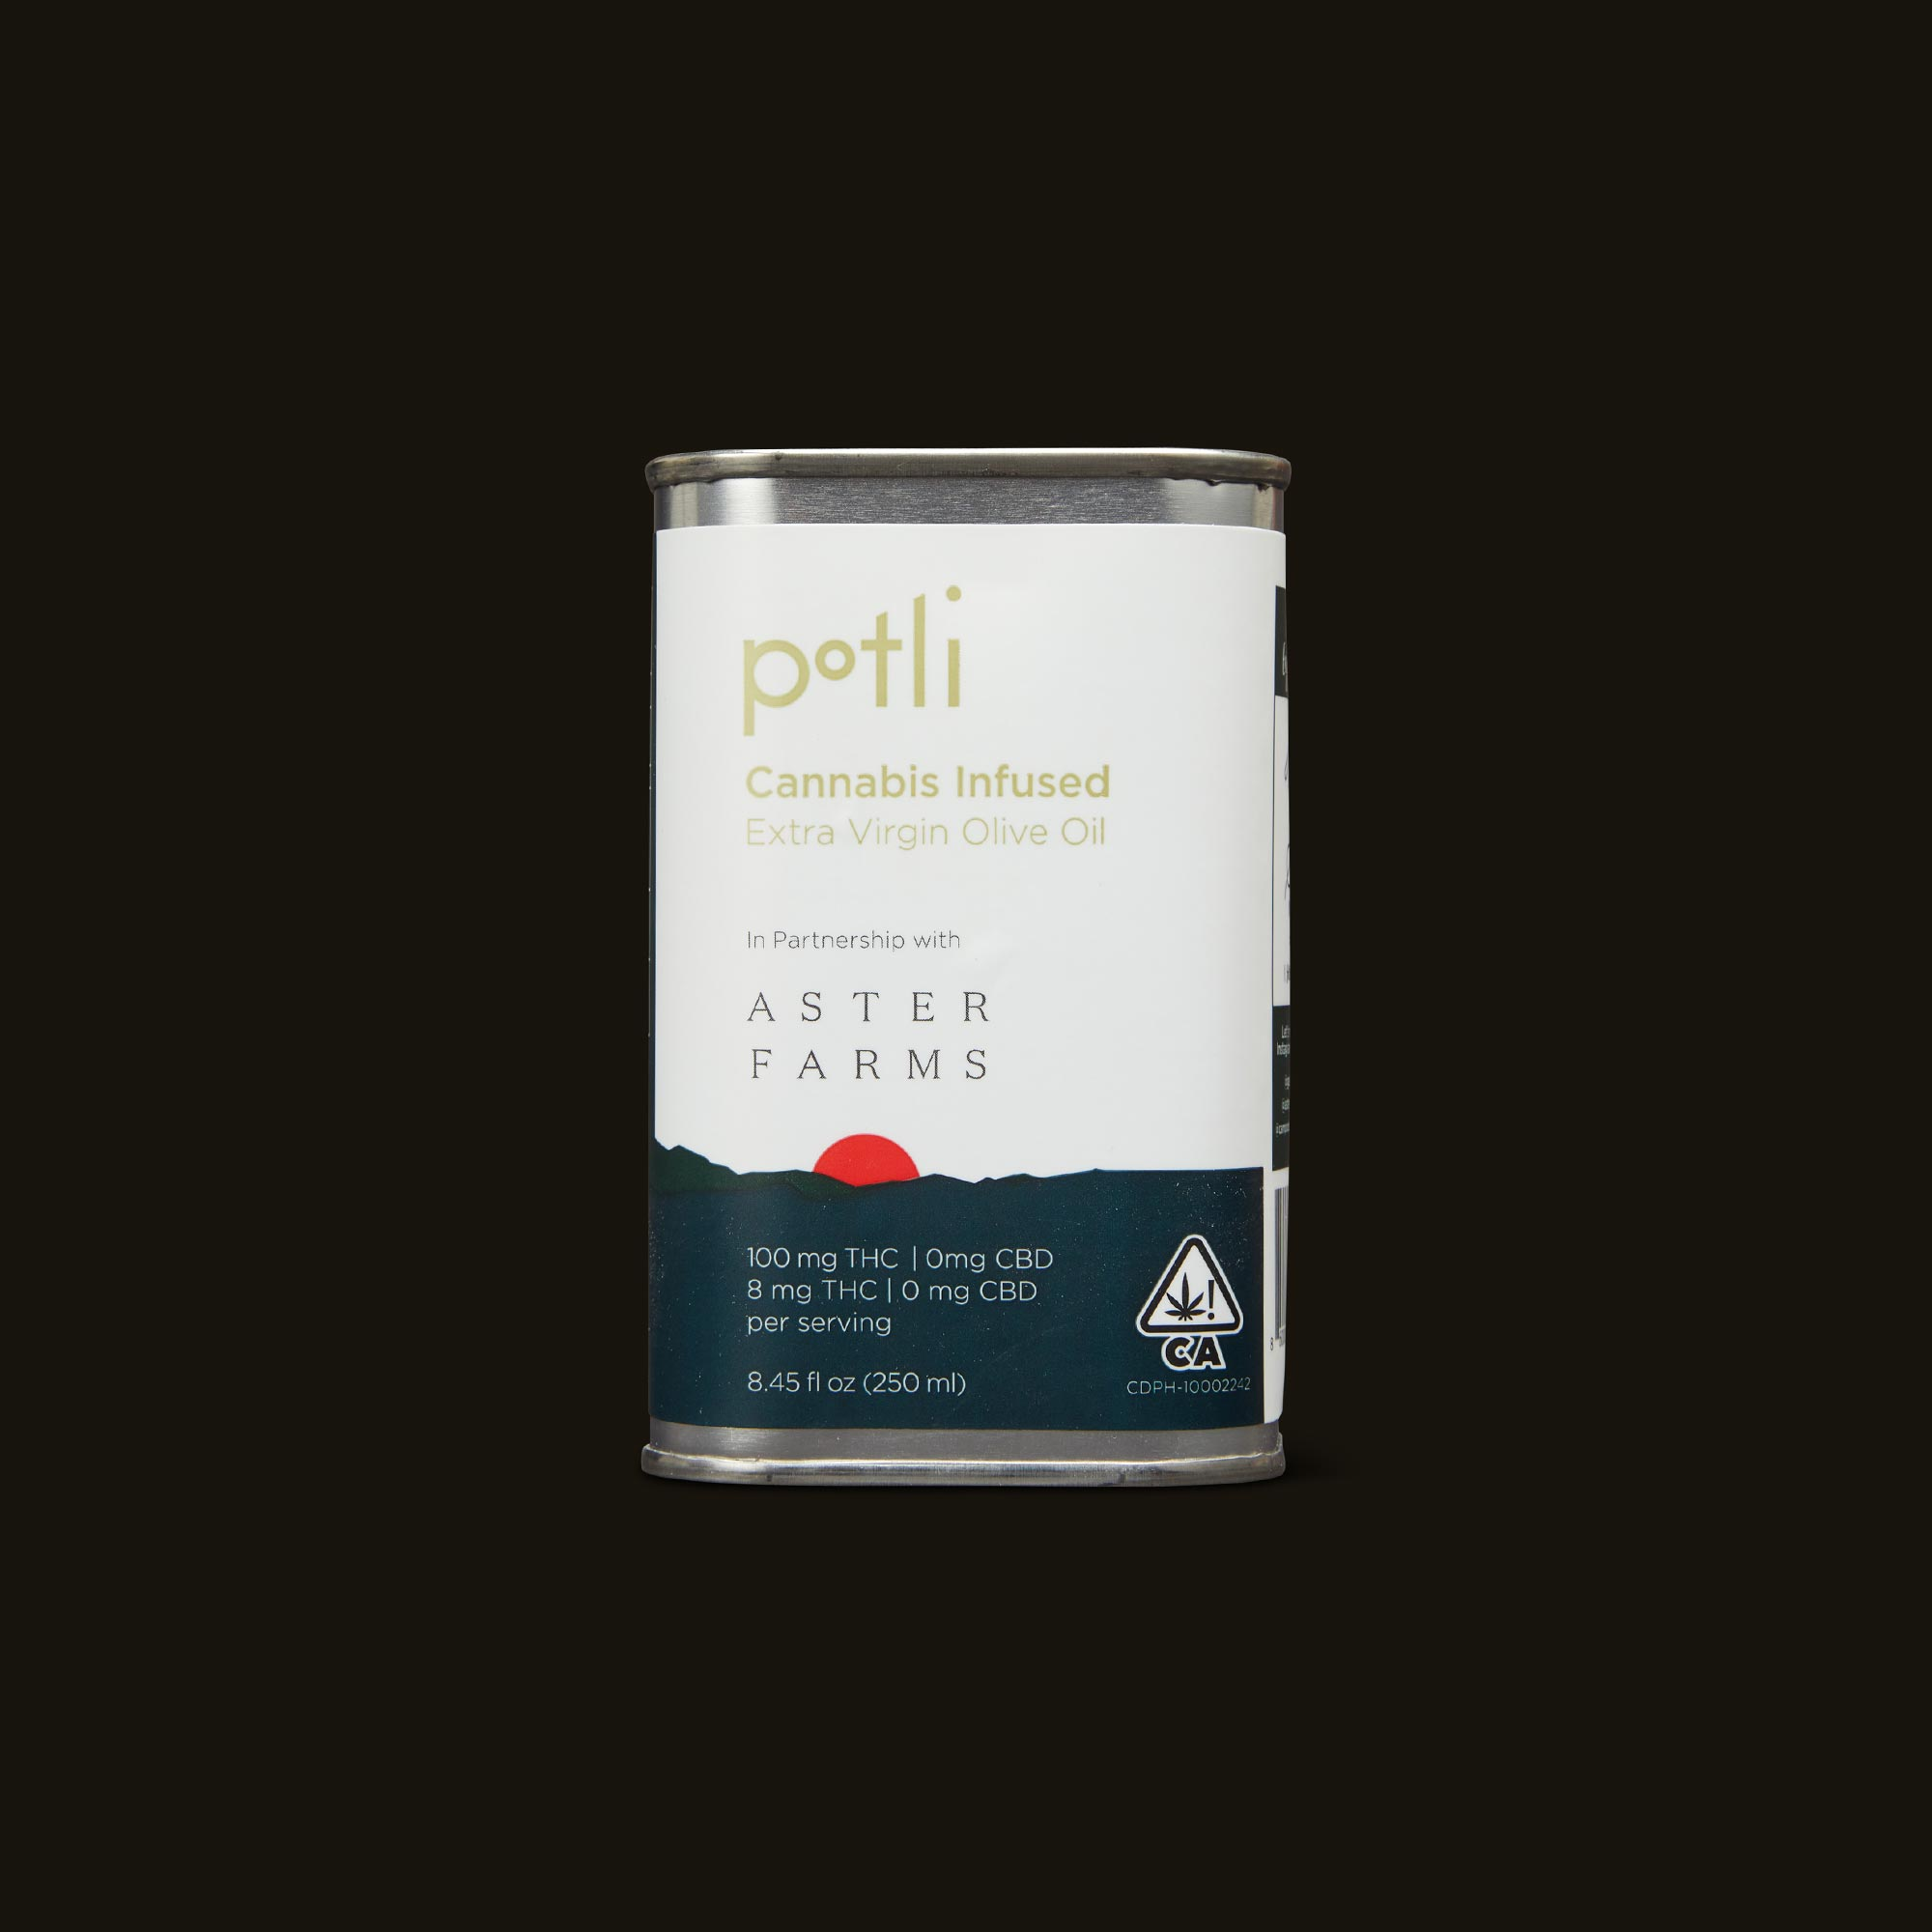 Aster Farms Potli Infused Olive Oil Front Packaging